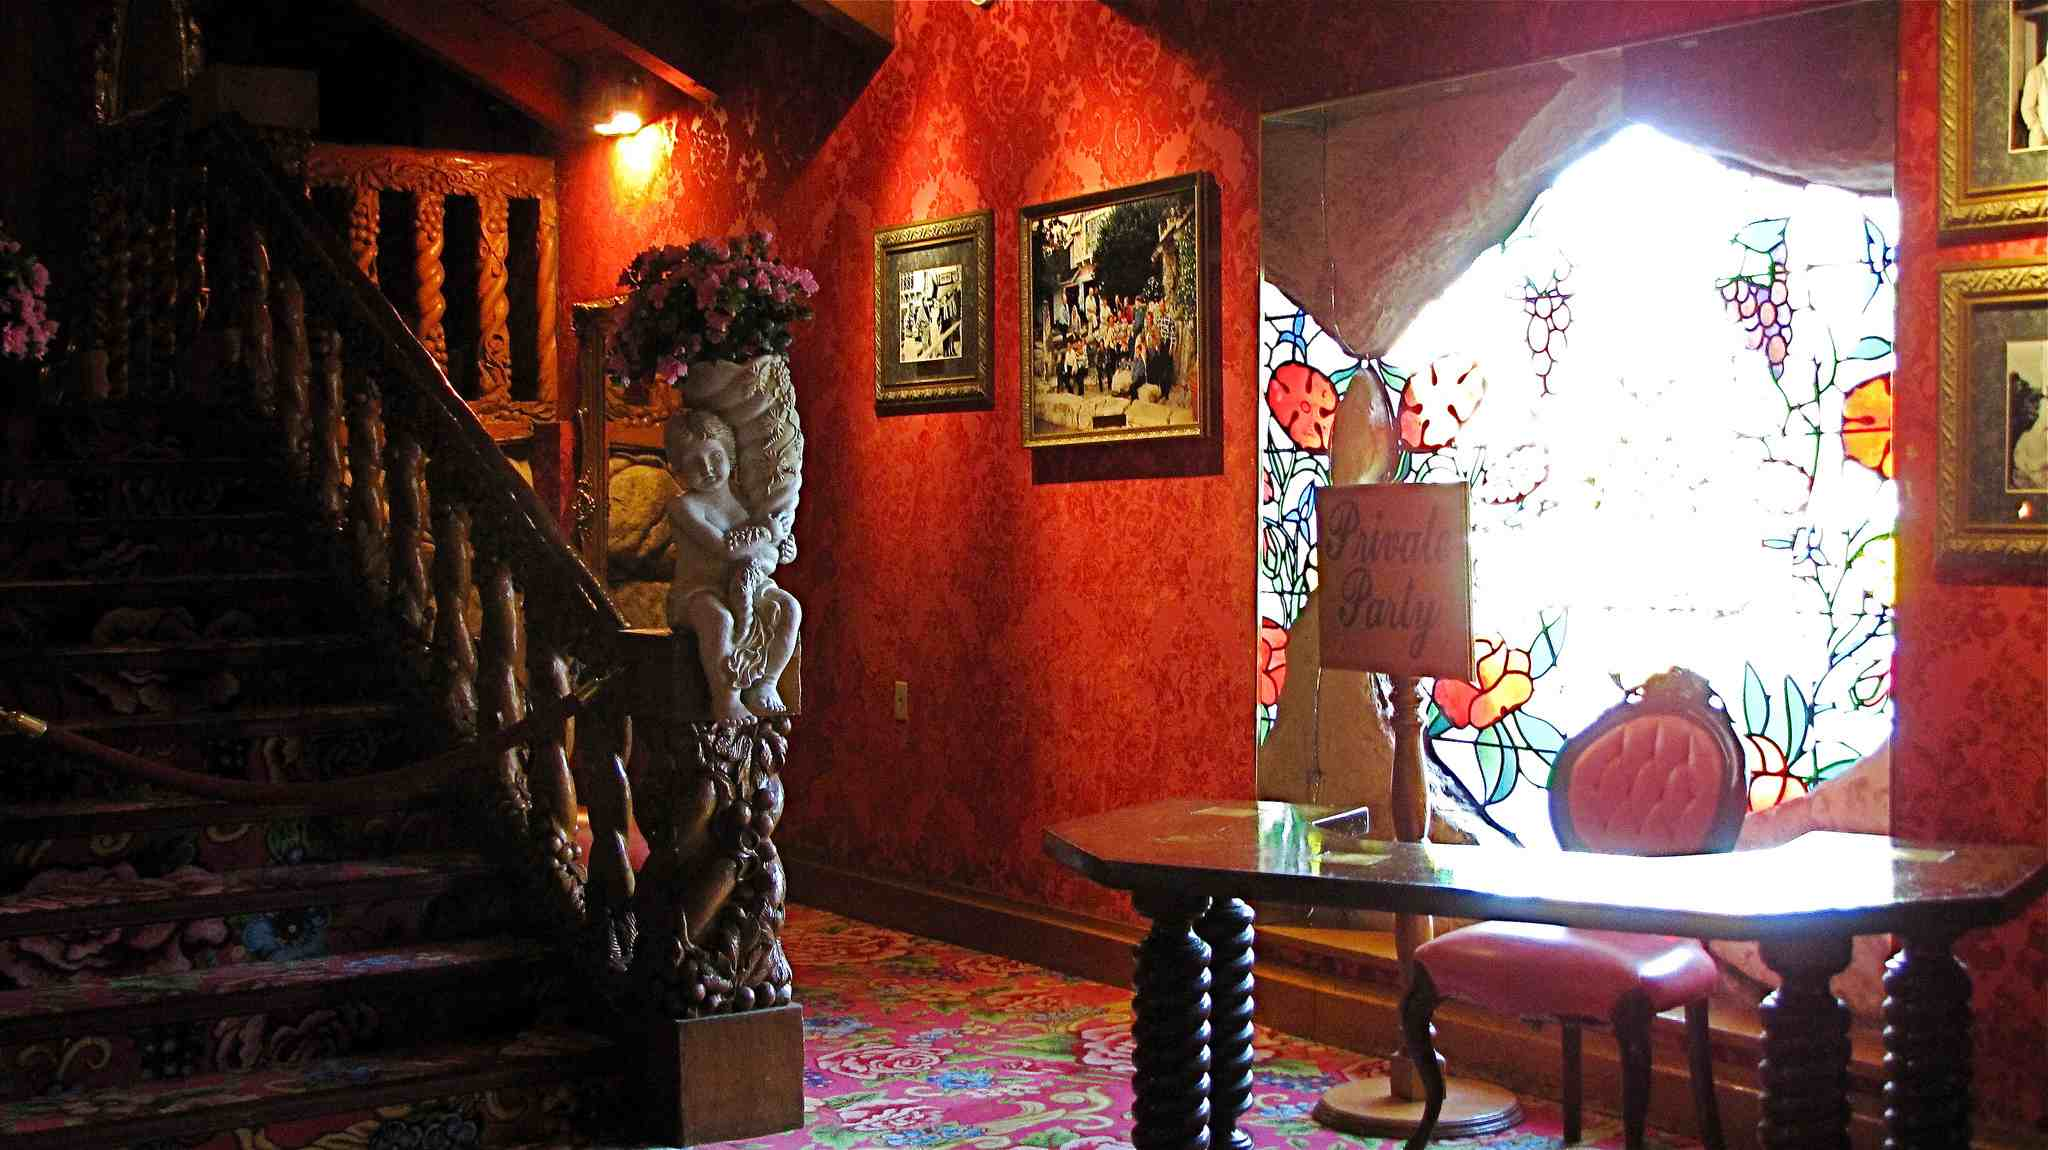 Interior shot of a red room with a stained glass windowat the Madonna Inn